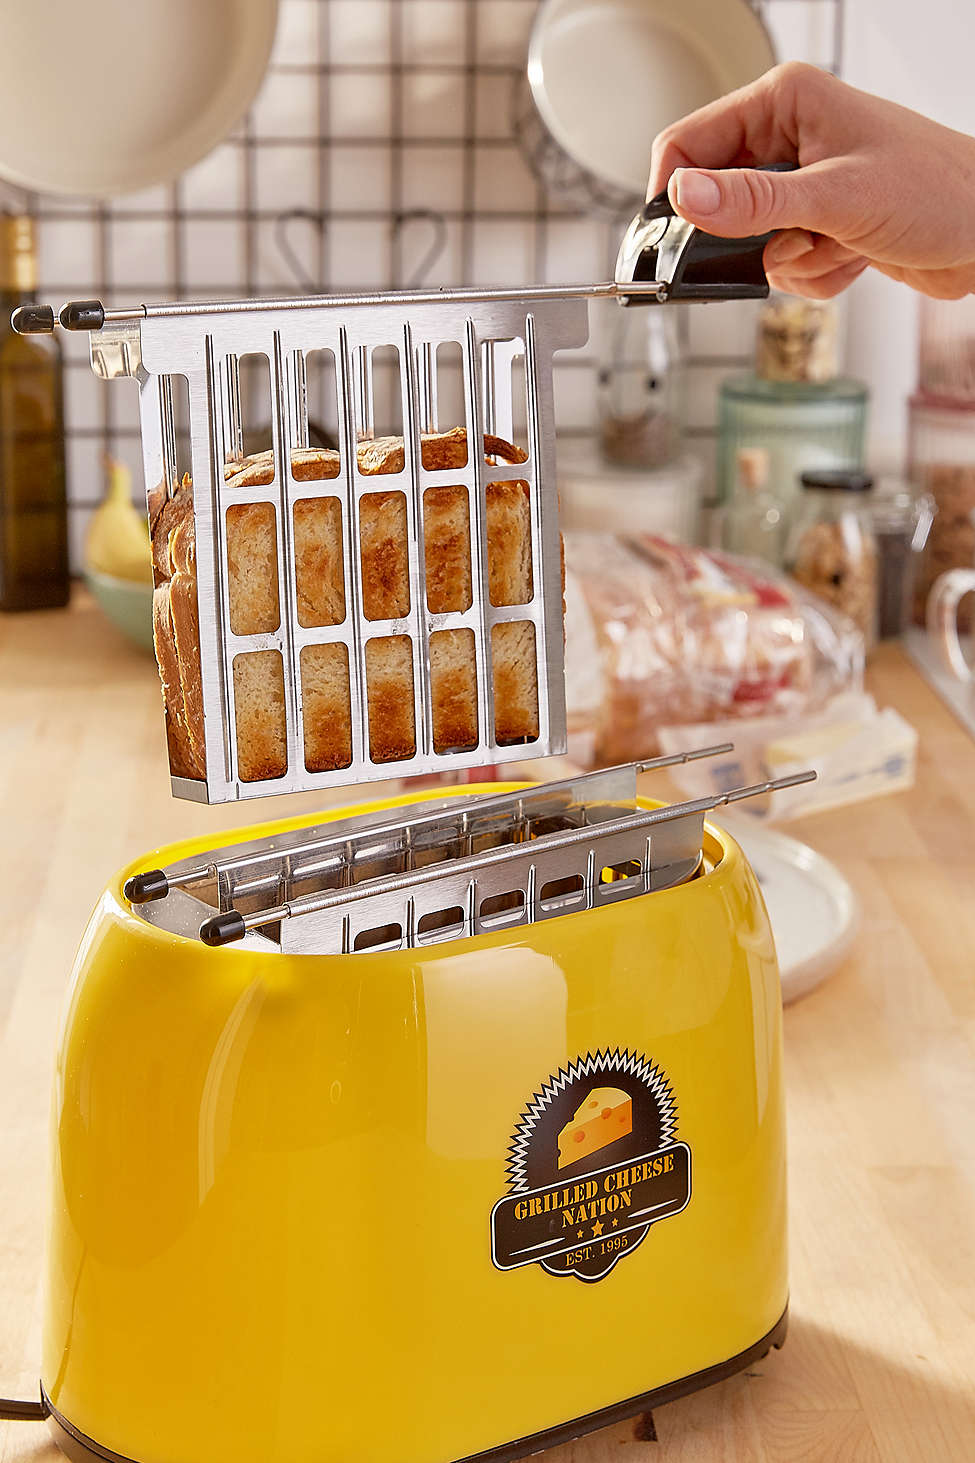 Grilled cheese toaster from Urban Outfitters